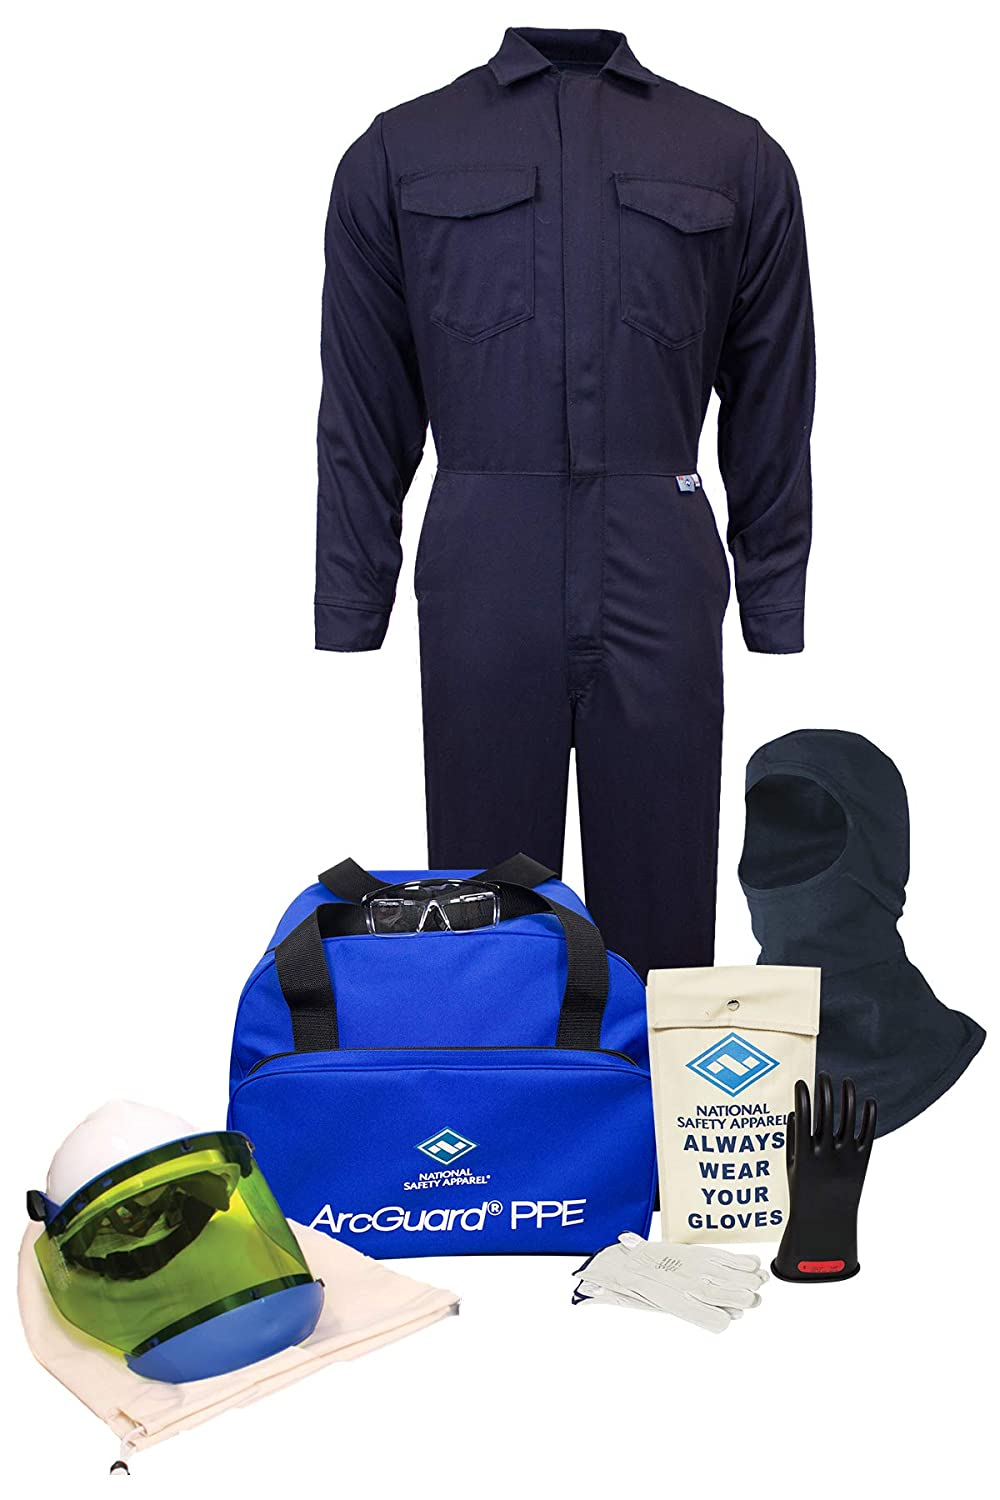 National Safety Apparel KIT2CV11SM08 ArcGuard UltraSoft Arc Flash Kit with Coverall Small Size 8 12 Calorie Navy Inc.